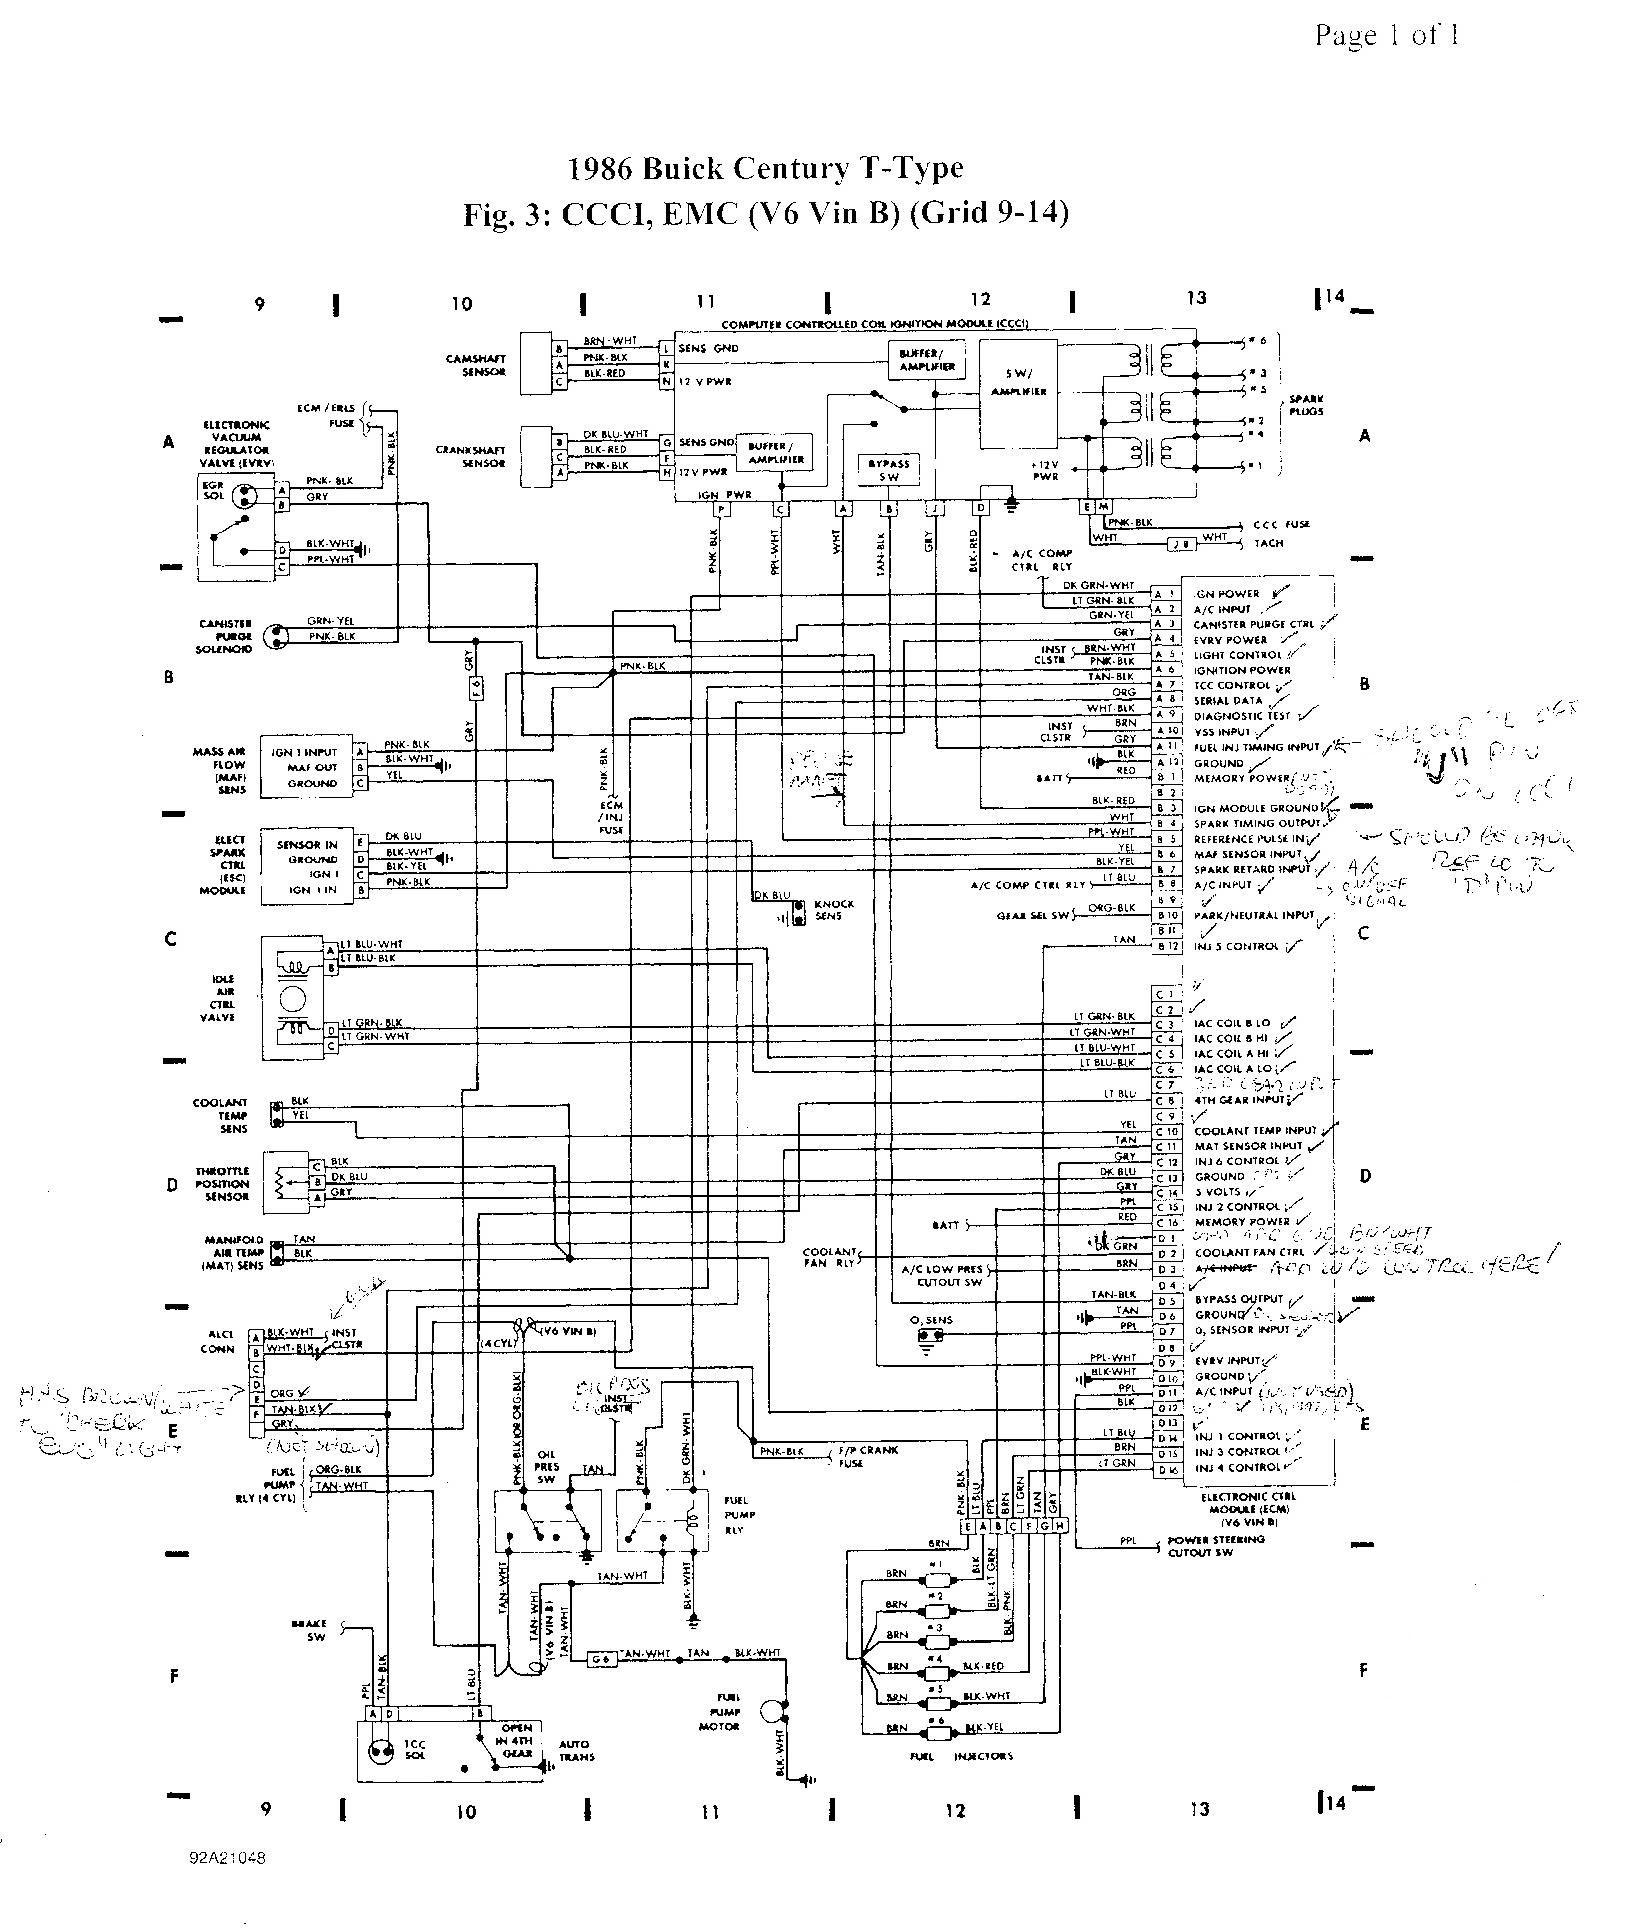 Vega Wiring Diagram | Wiring Liry on 1975 chevy parts, 1975 chevy carburetor, 1975 chevy chassis, 1975 chevy alternator, 1975 chevy drive shaft, 1975 chevy firing order, 1975 chevy engine, 1975 chevy ignition diagram, 1975 chevy ignition switch, 1975 chevy steering column diagram, 1975 chevy starter,